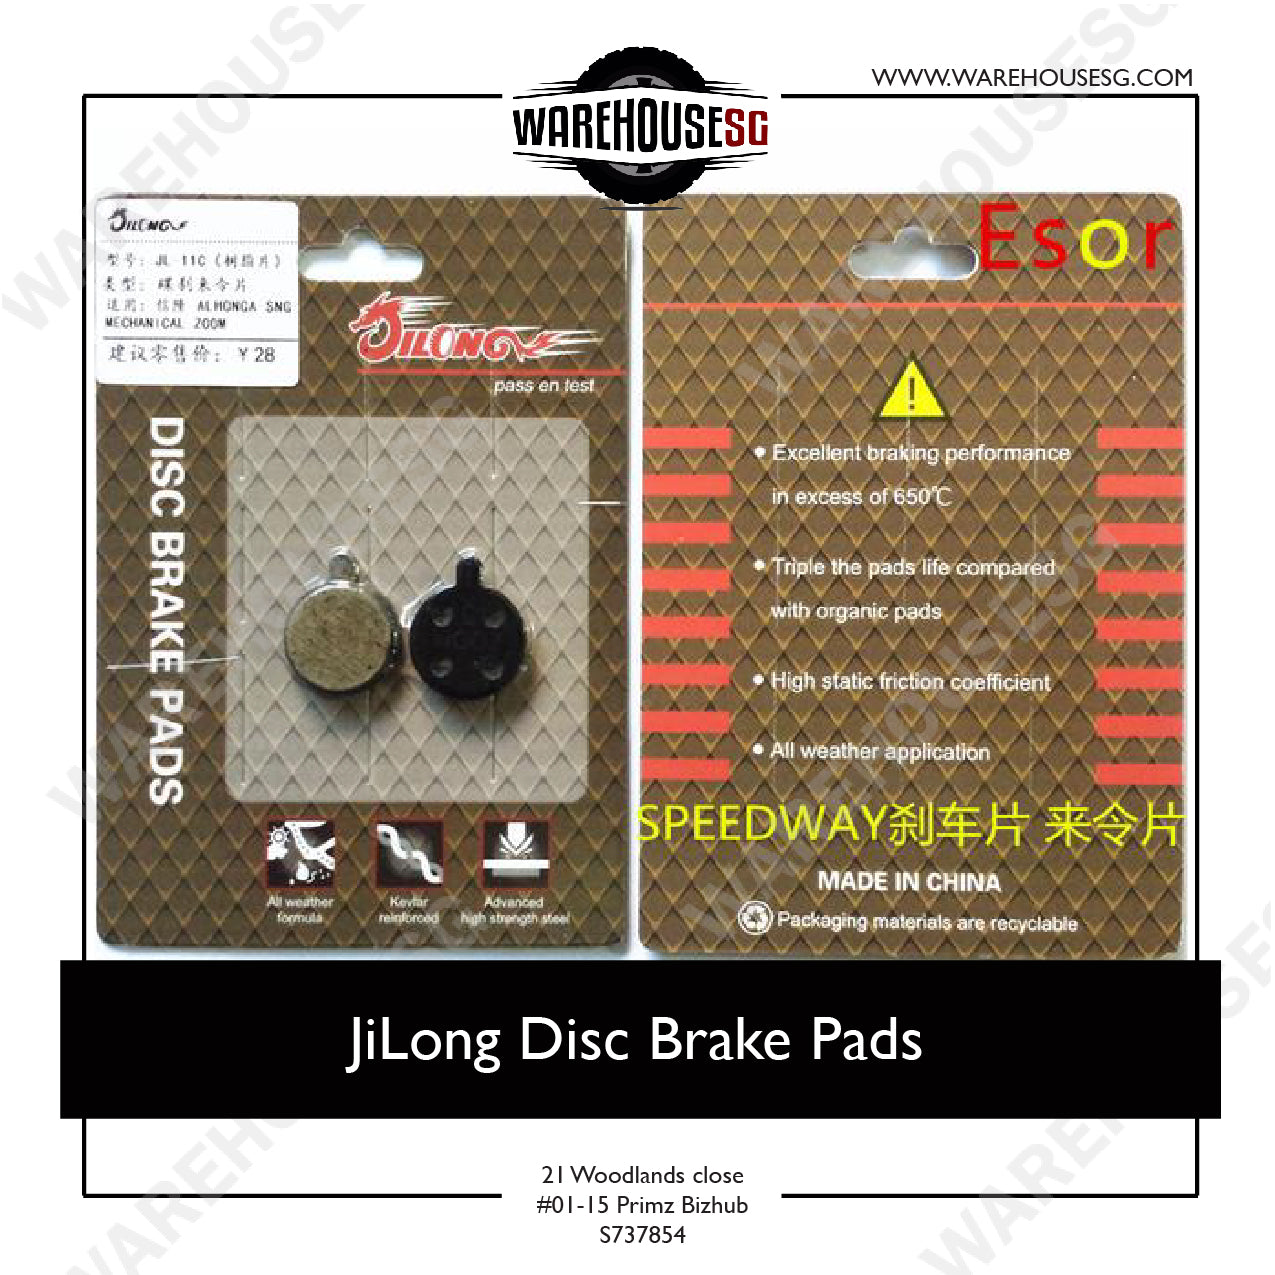 Jilong Zoom Disc Brake Pads